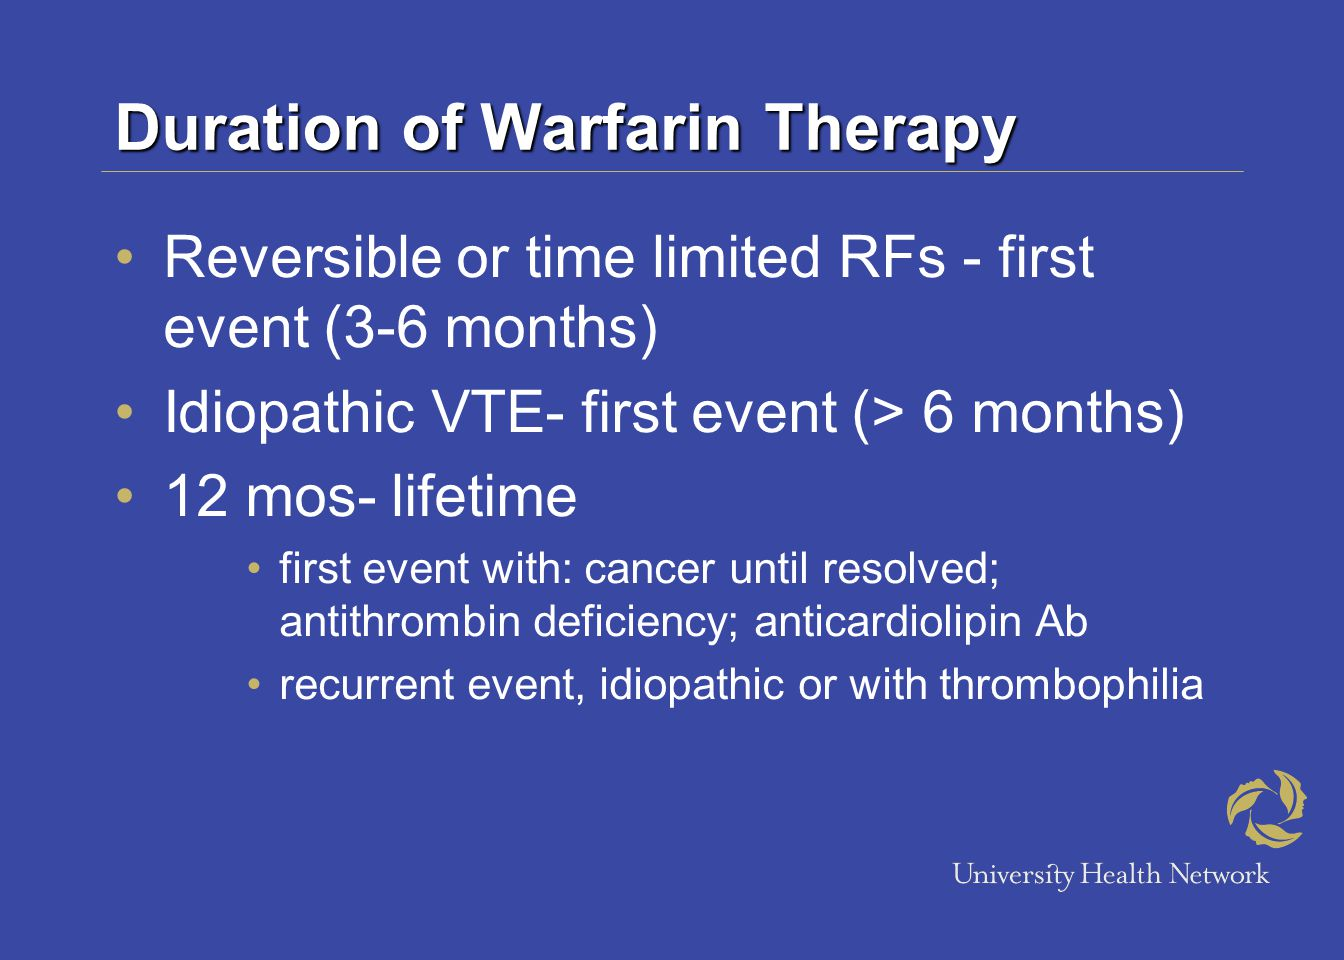 Duration of Warfarin Therapy Reversible or time limited RFs - first event (3-6 months) Idiopathic VTE- first event (> 6 months) 12 mos- lifetime first event with: cancer until resolved; antithrombin deficiency; anticardiolipin Ab recurrent event, idiopathic or with thrombophilia